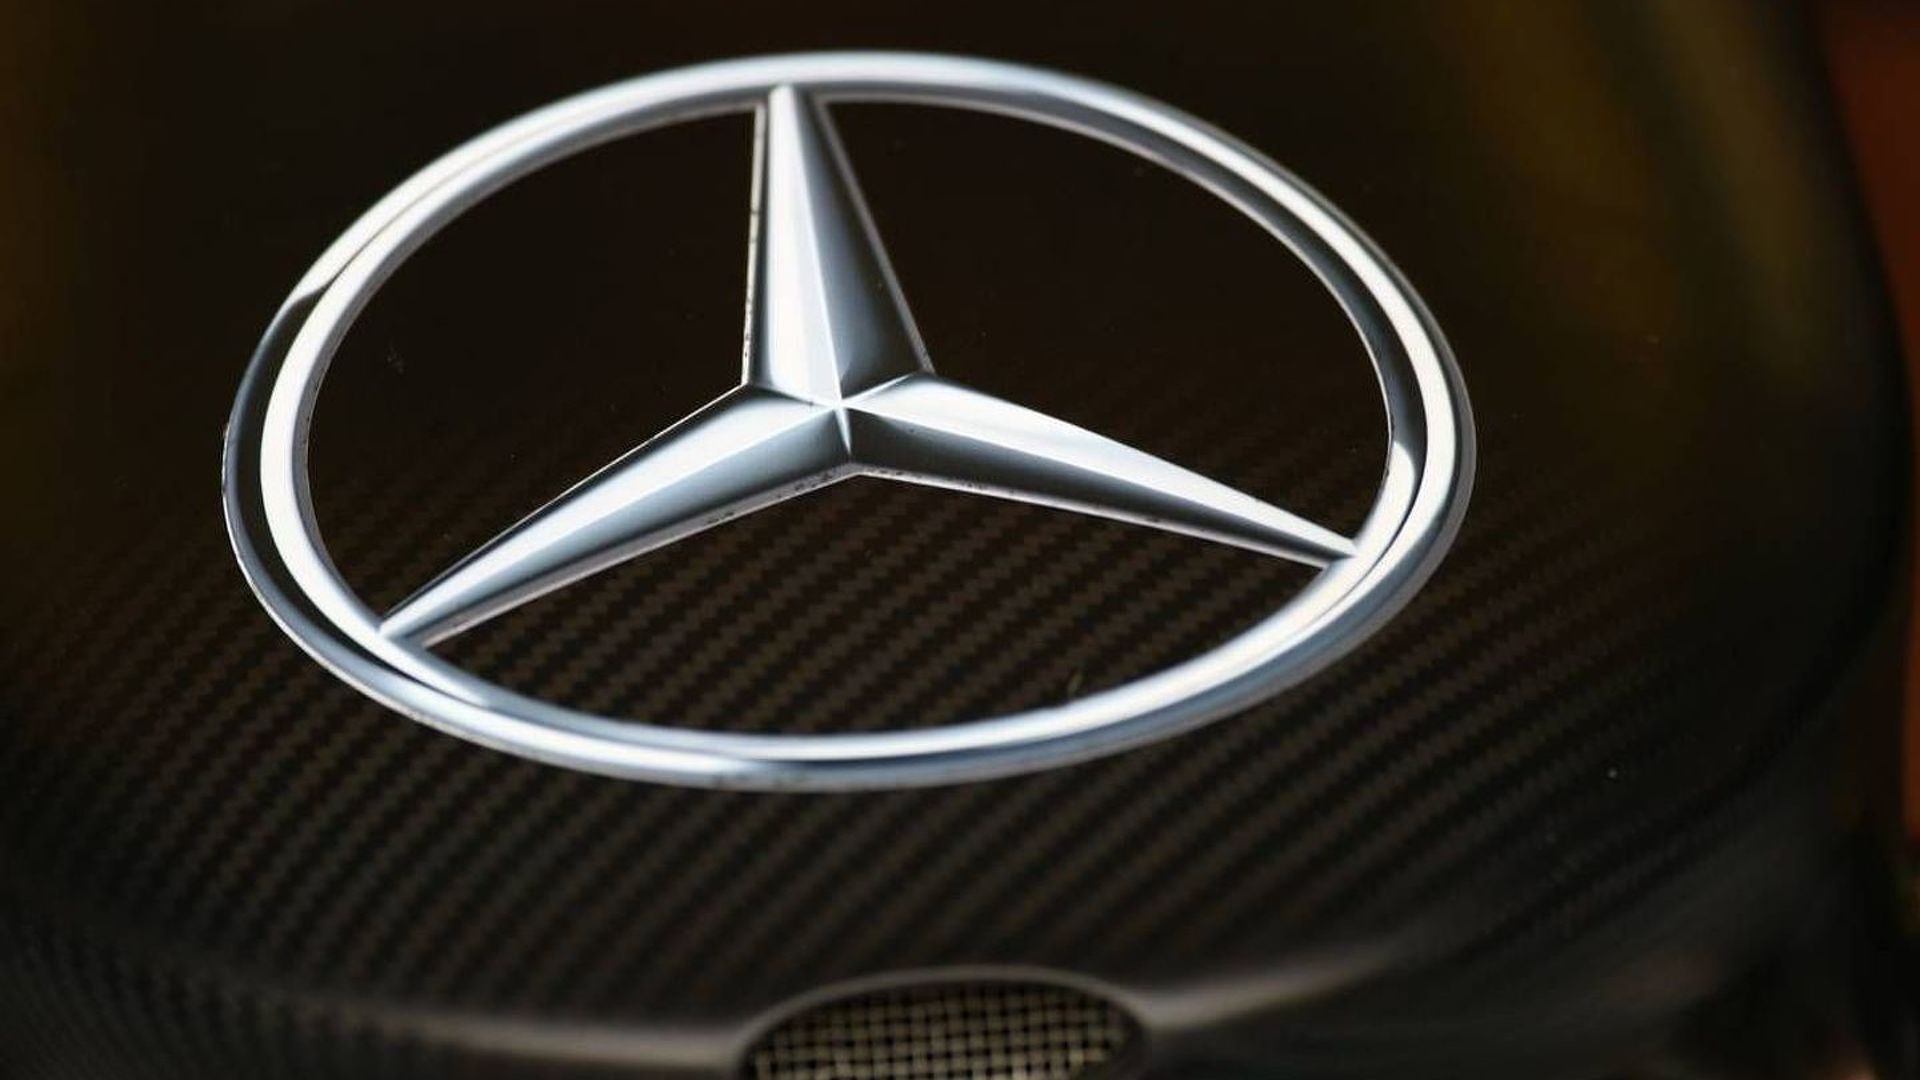 Mercedes takes full control of F1 team